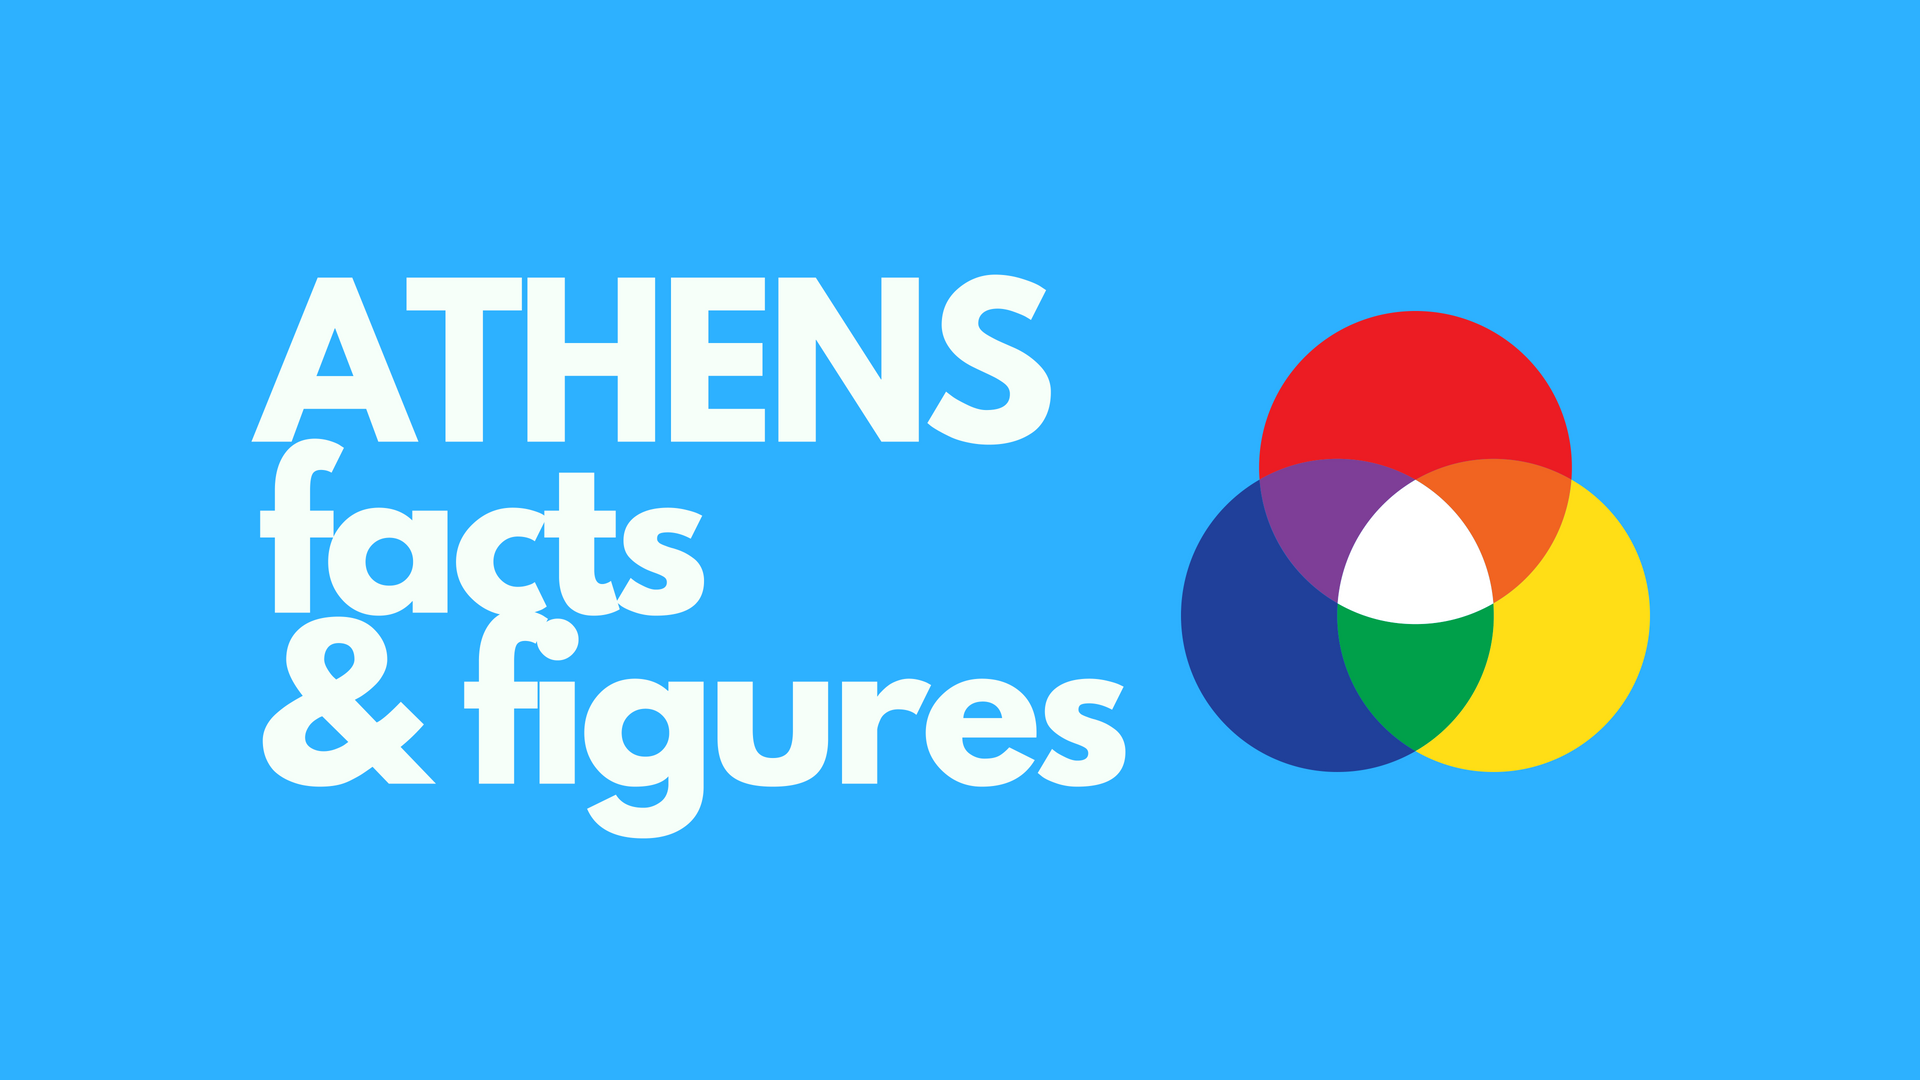 athens facts & figures